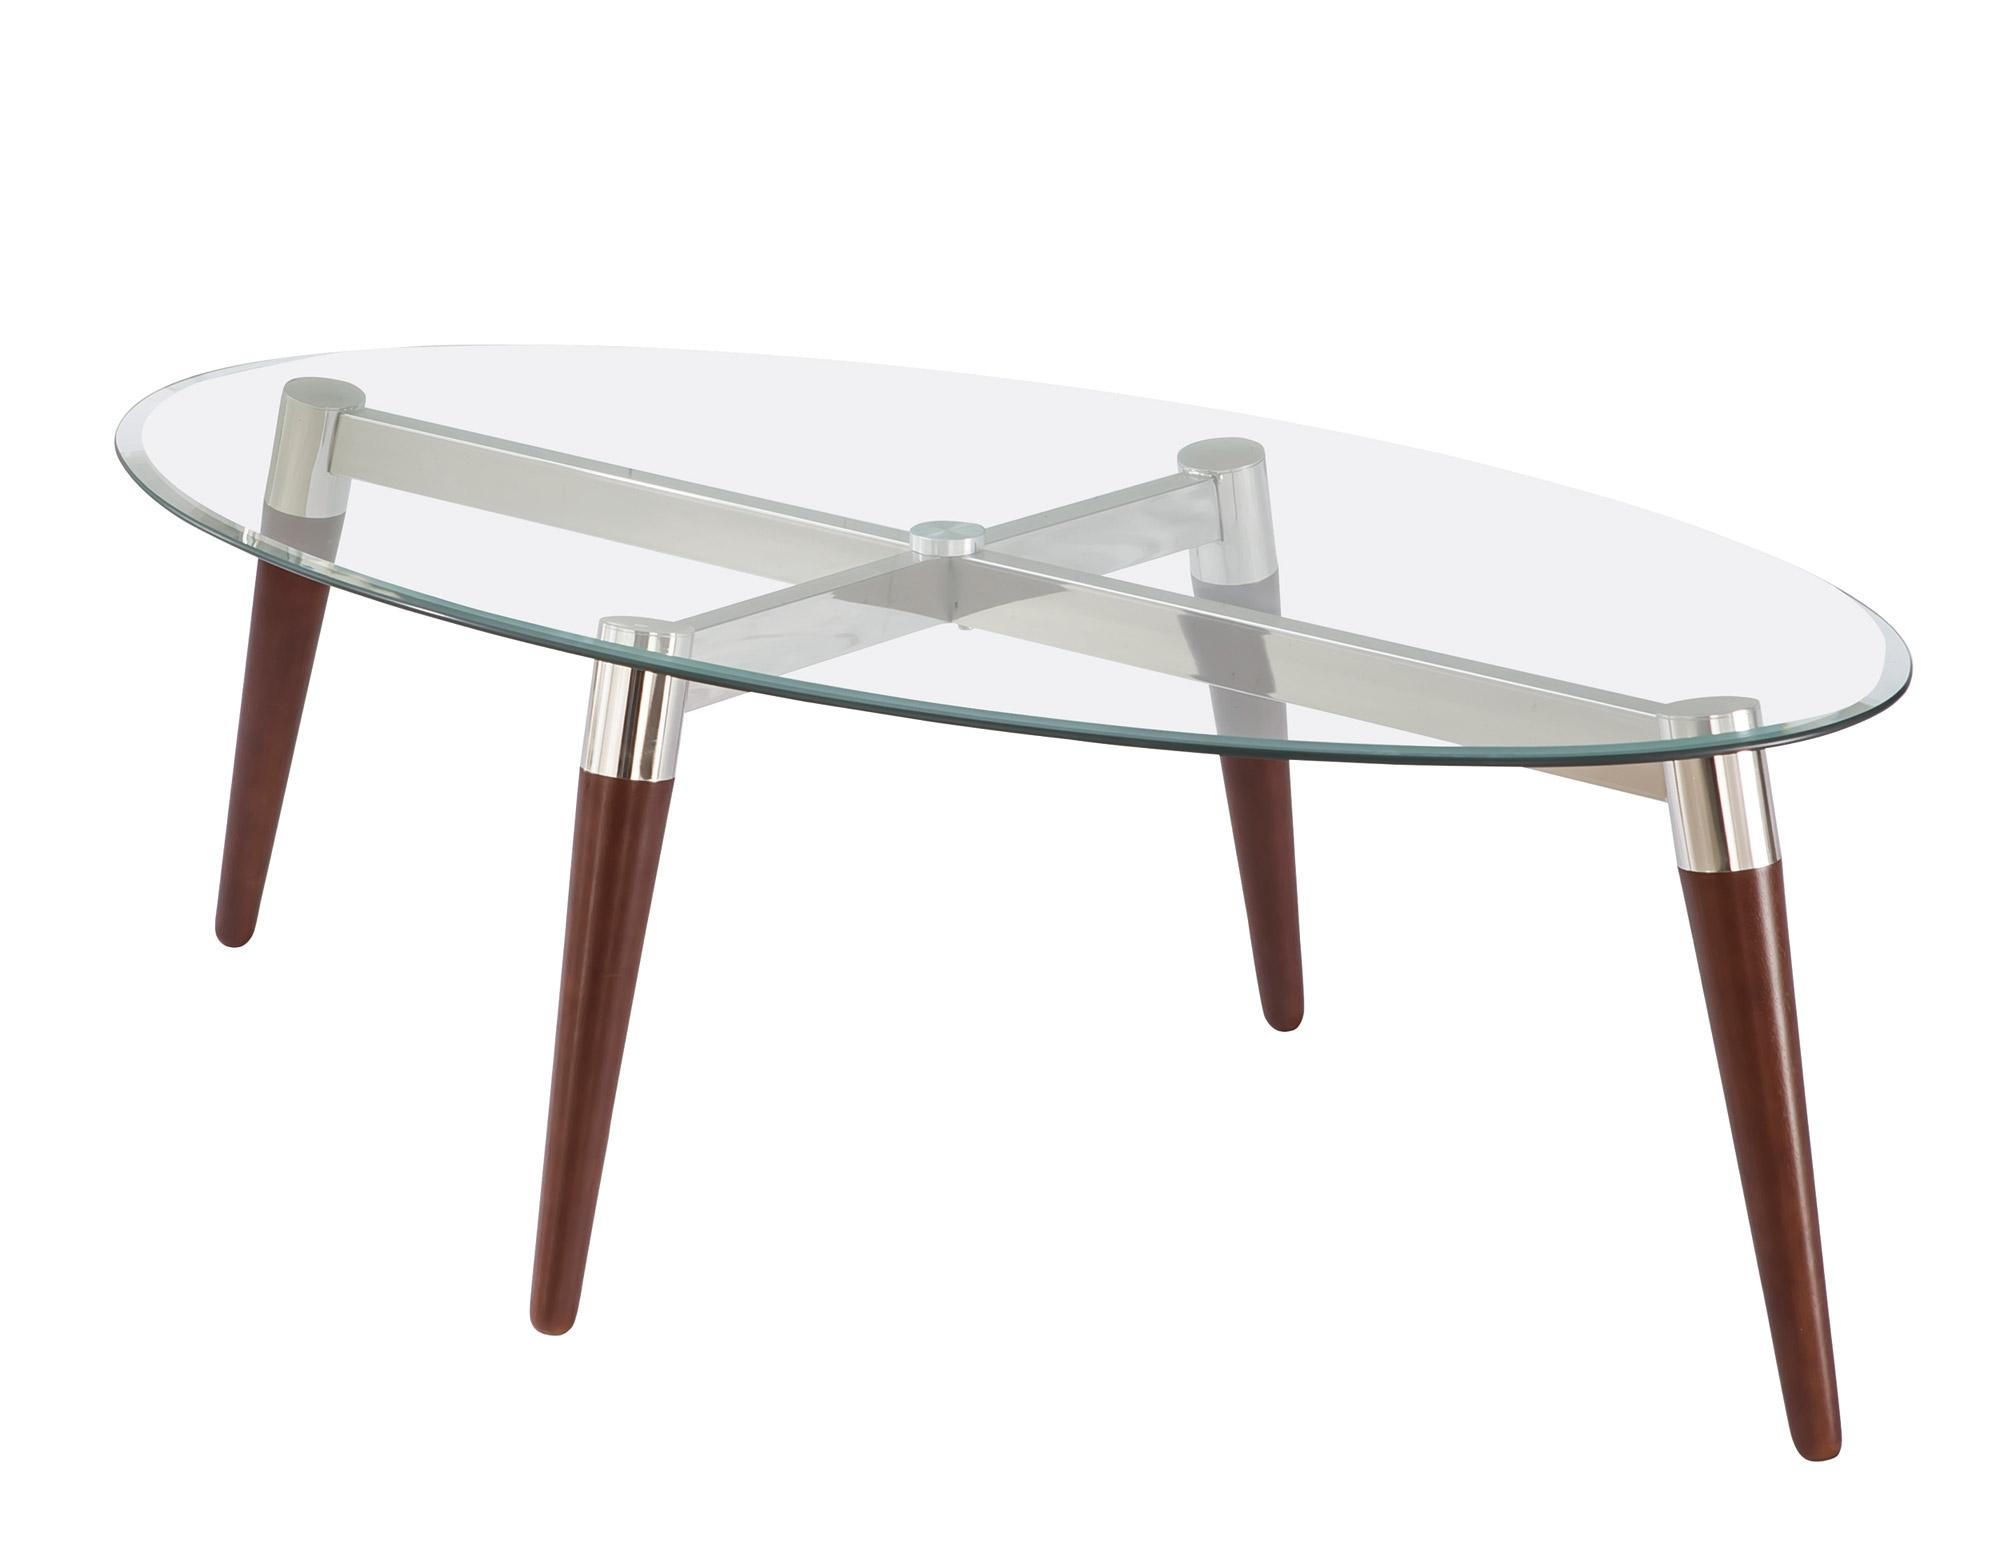 Contemporary Brown Glass Metal Coffee Table W Oval Shape The Classy Home